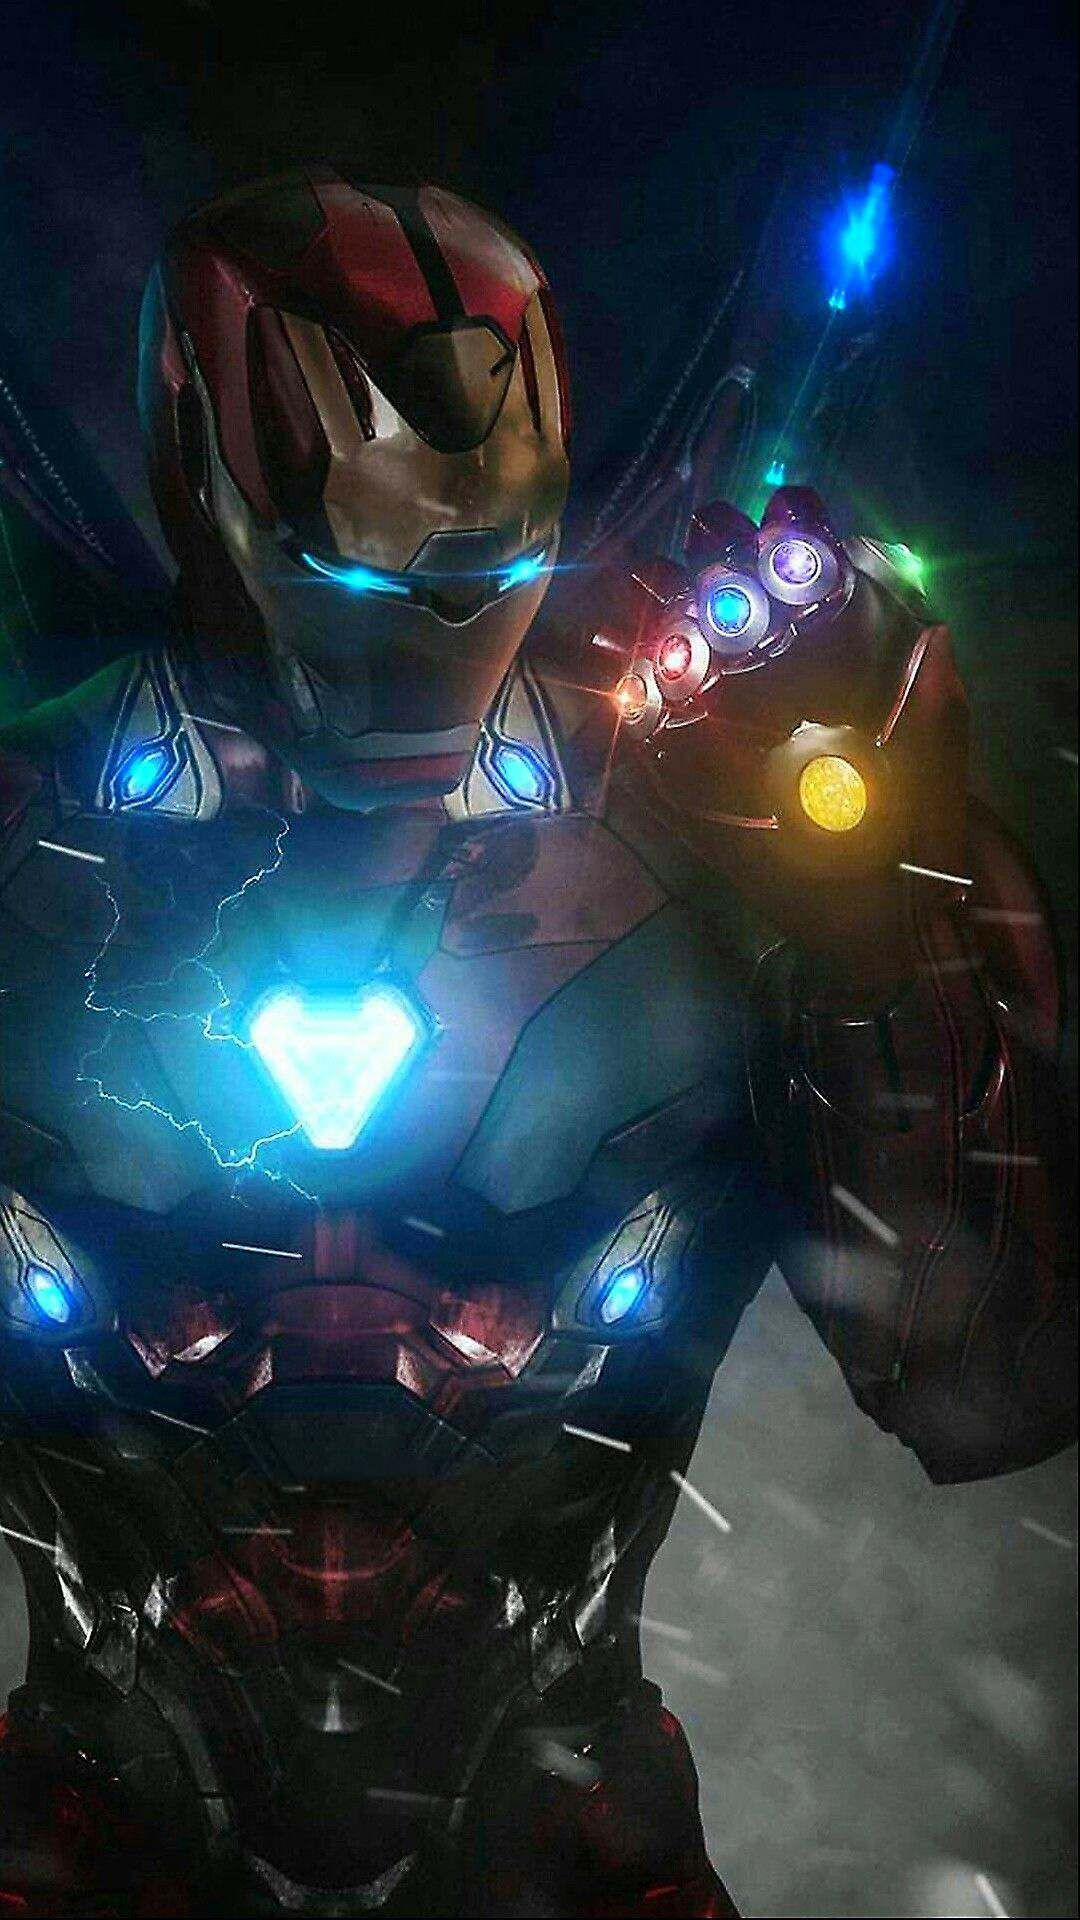 The Iron Man Endgame Fate Concludes After A 10 Year Journey Iron Man Wallpaper Iron Man Avengers Marvel Wallpaper